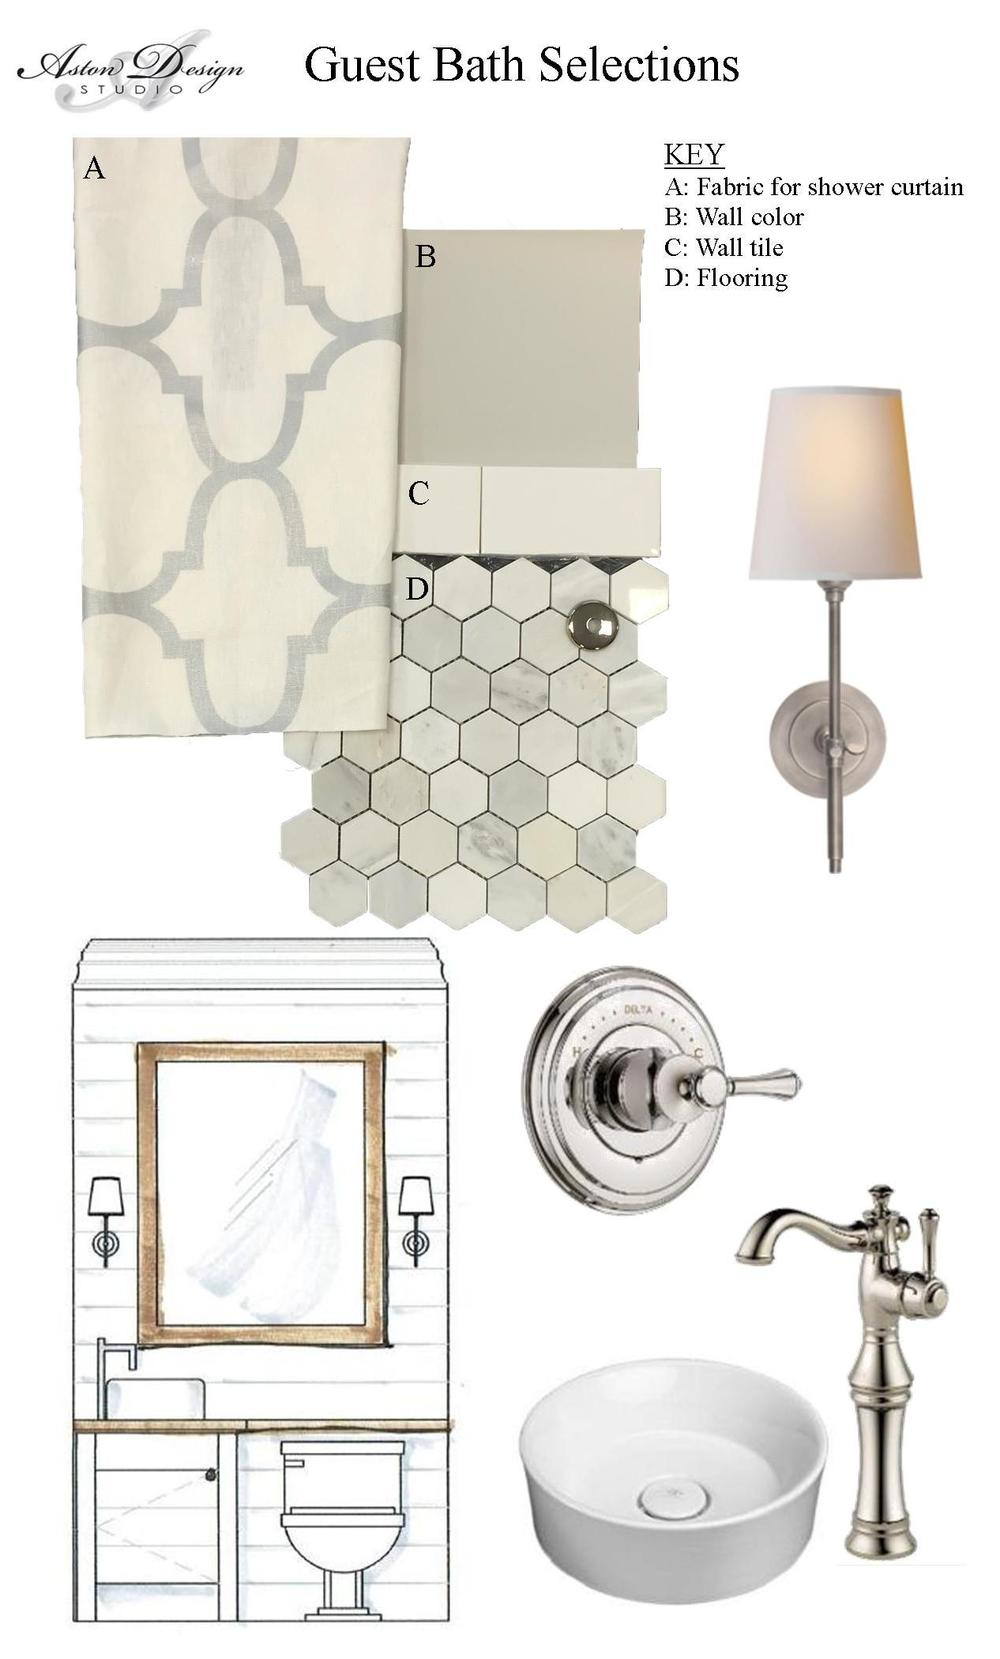 Guest bathroom selections made by interior designer Carla Aston